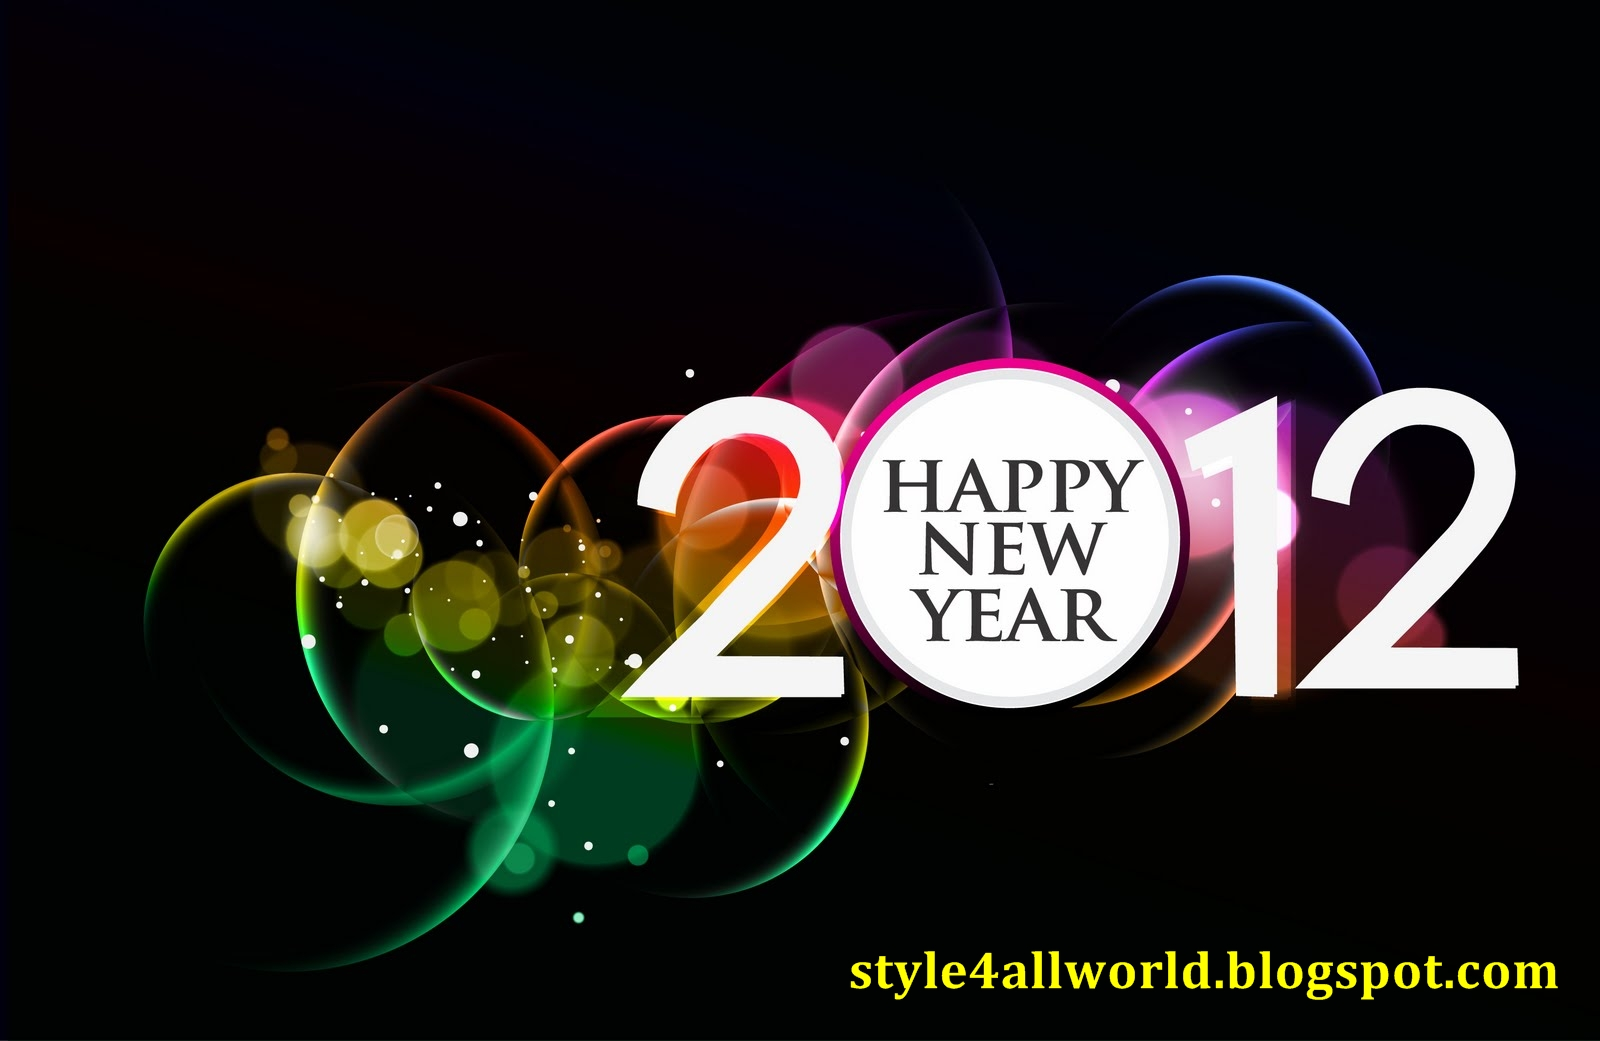 Download image New Year Greetings Wallpapers Wallpaper 2012 Happy PC 1600x1041